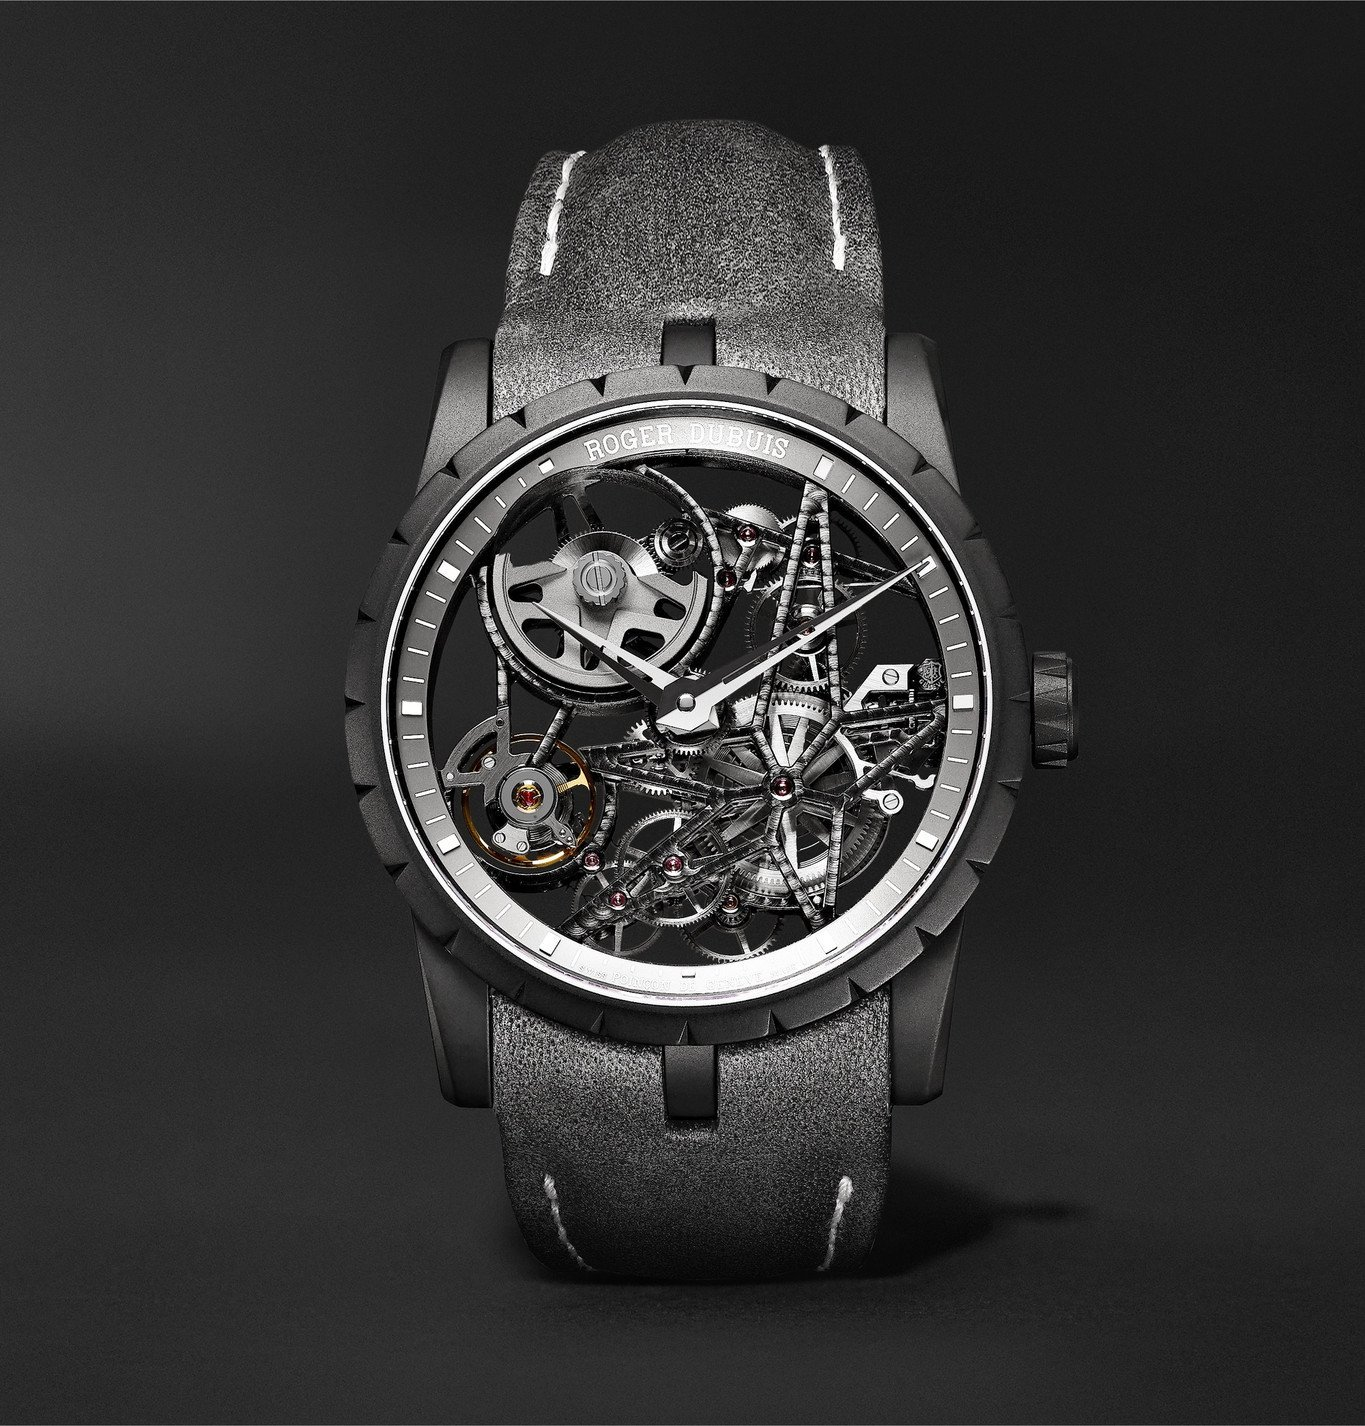 Photo: Roger Dubuis - Excalibur Automatic Skeleton 42mm Titanium and Leather Watch, Ref. No. DBEX0726 - Unknown